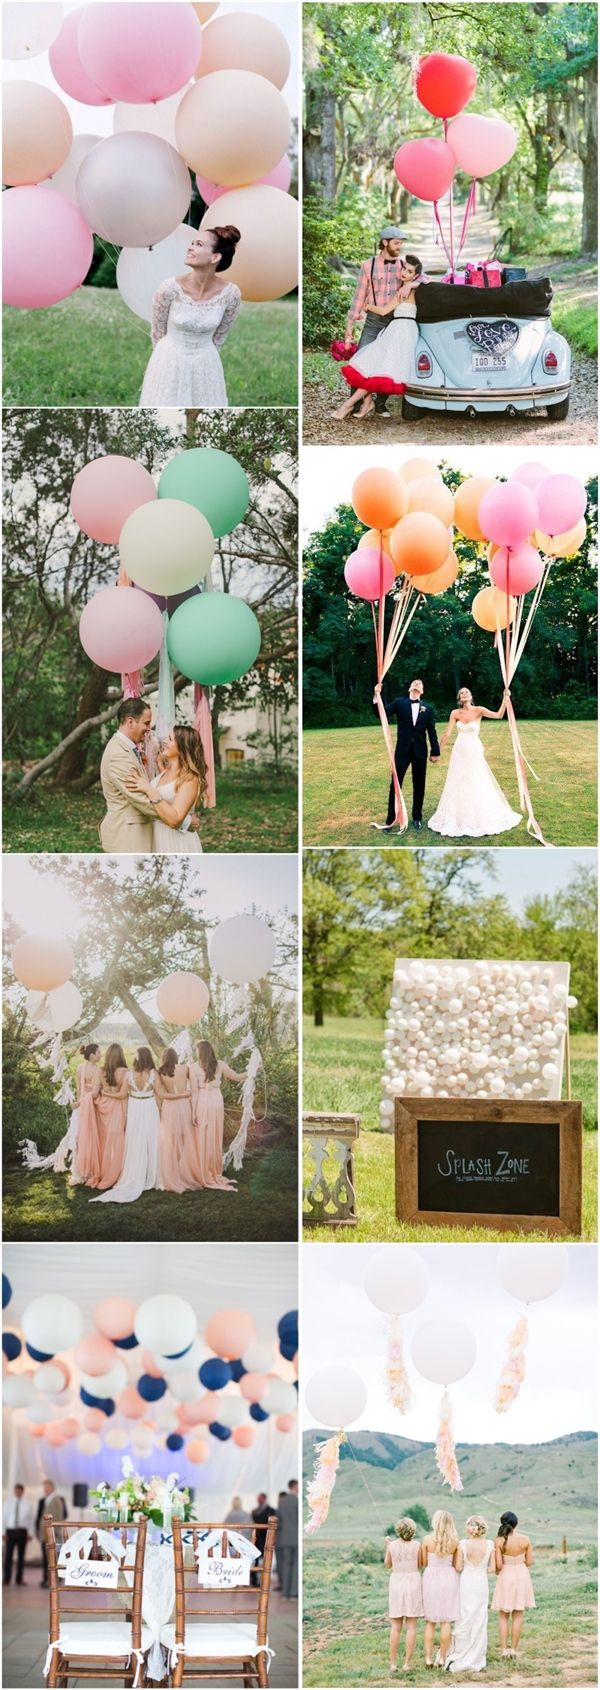 Best 35 Giant Balloon Wedding Ideas For Your Big Day Wedding This Month